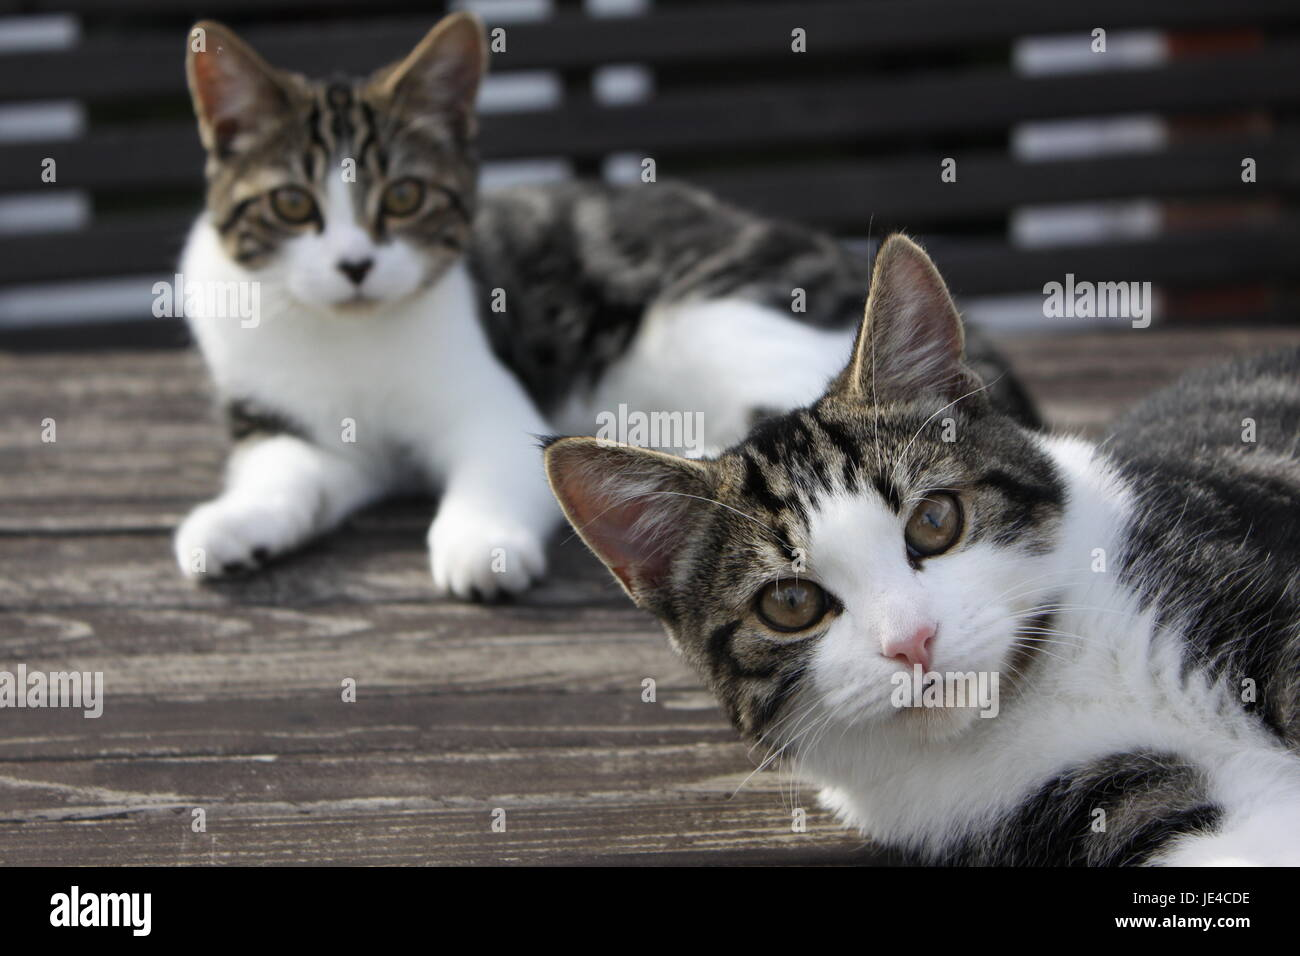 Two Kittens on wooden table - Stock Image